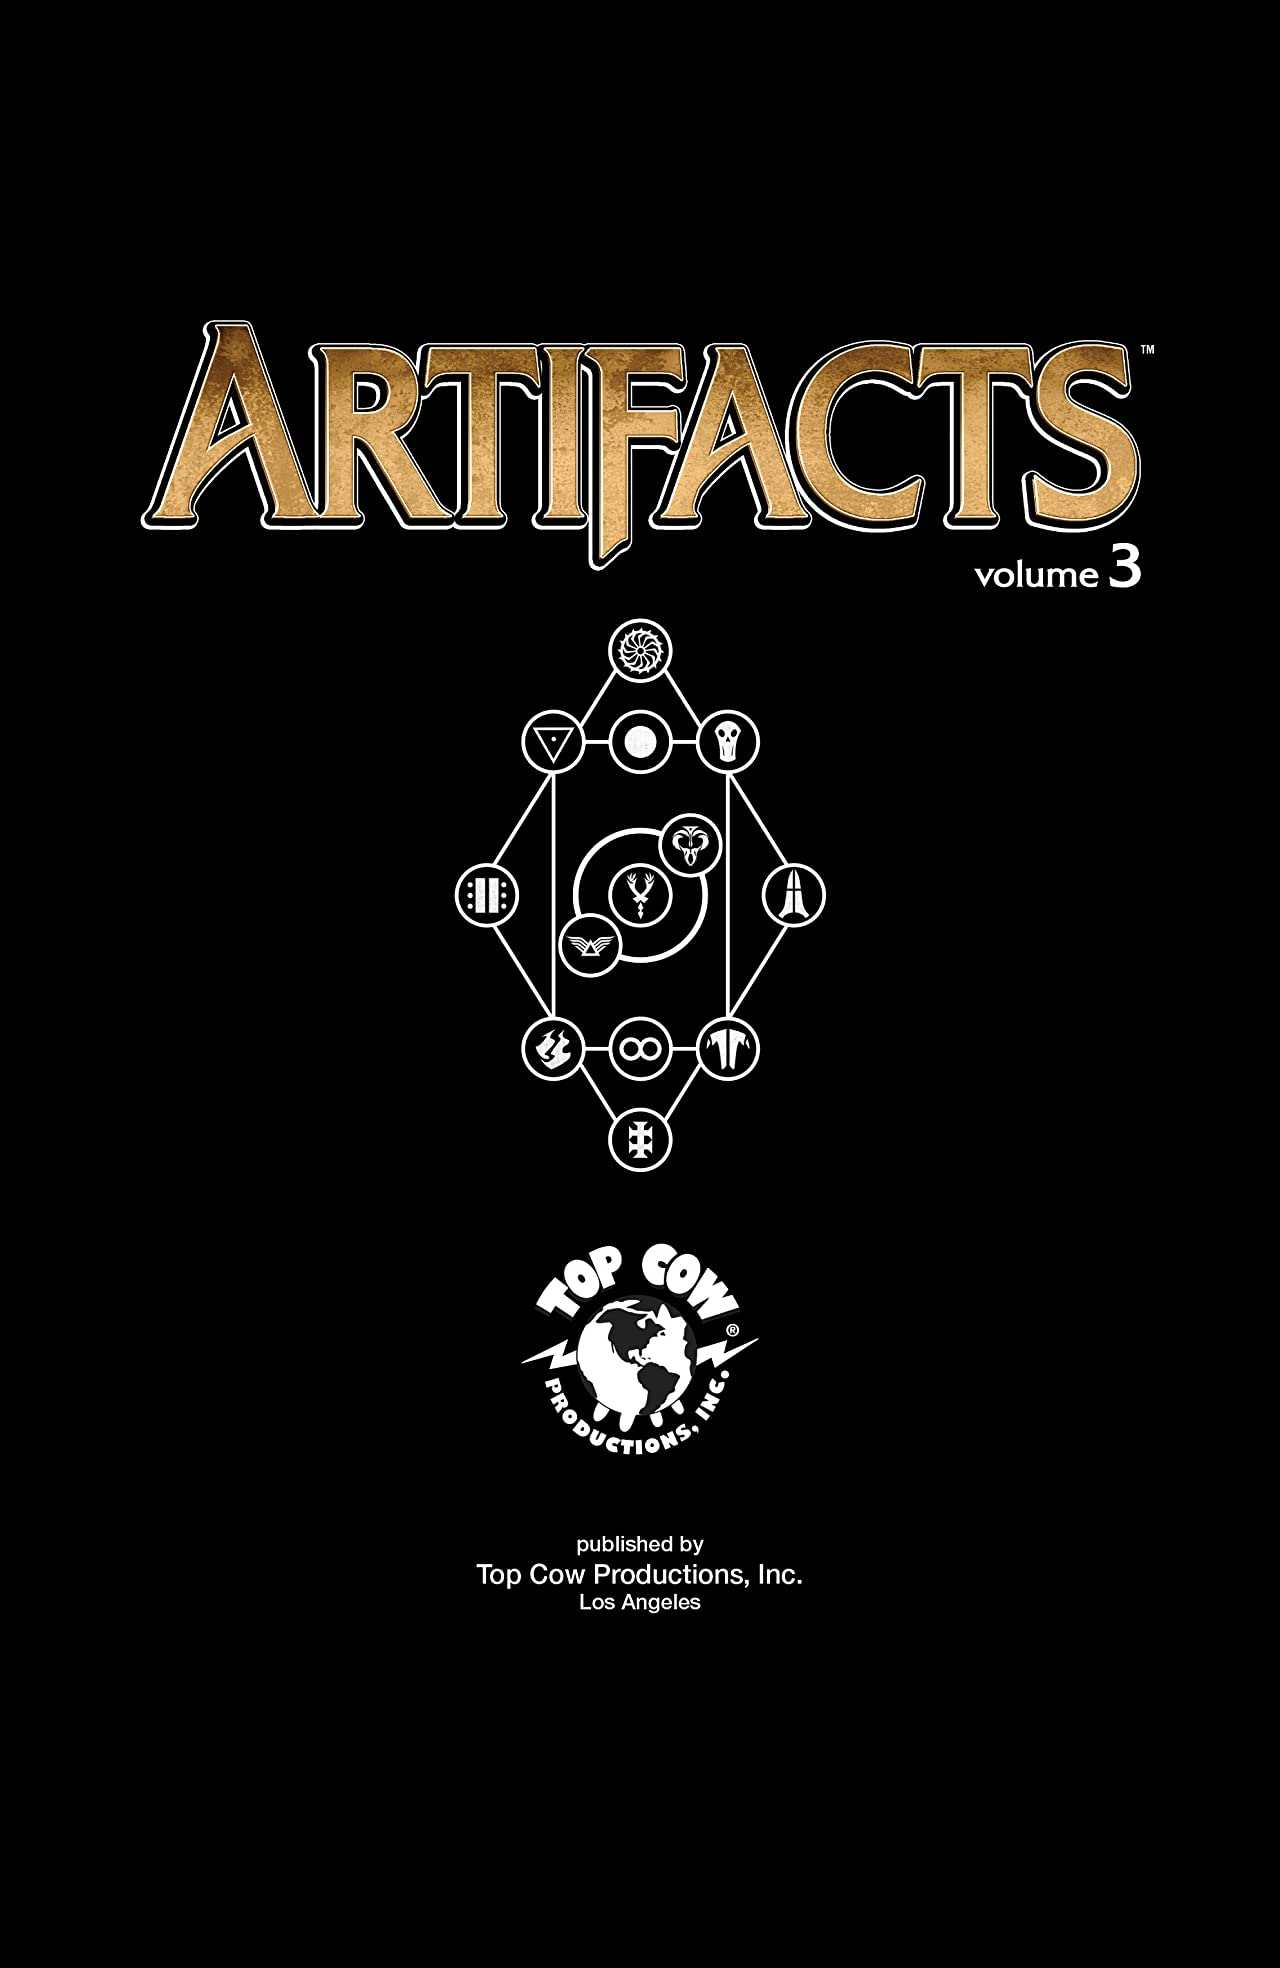 Artifacts Vol. 3